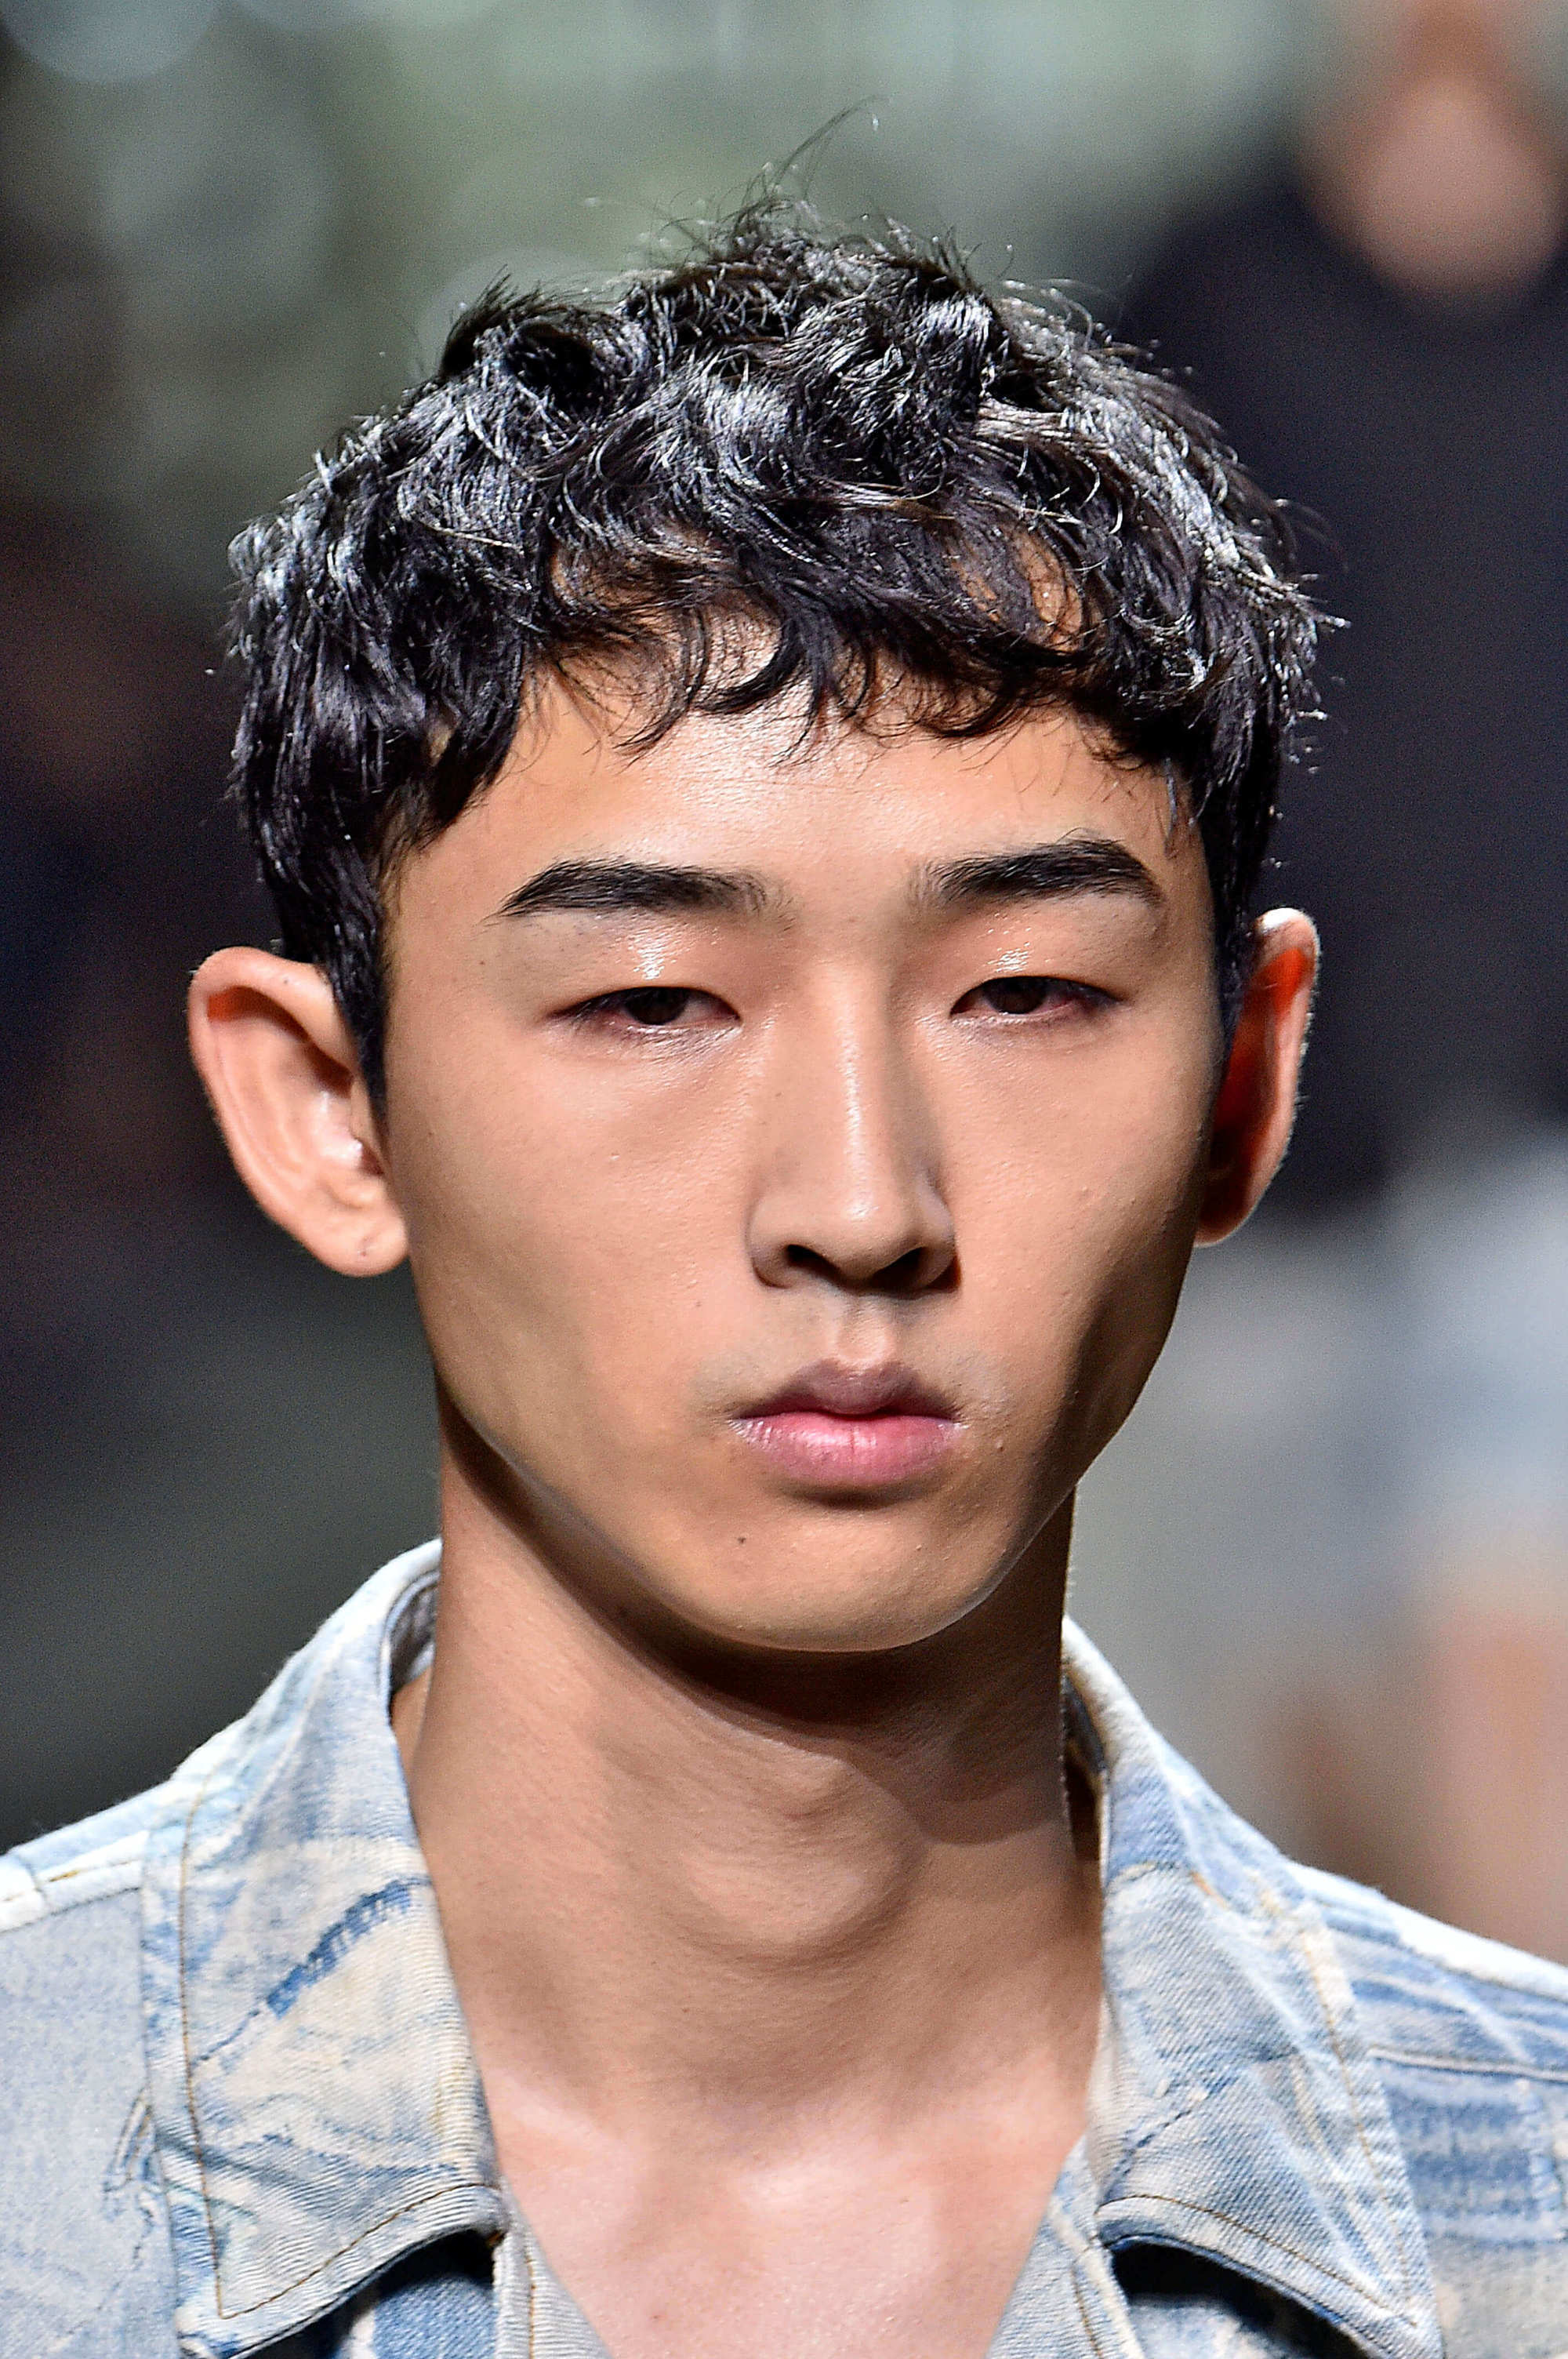 style men's curls with a tousled bowl cut